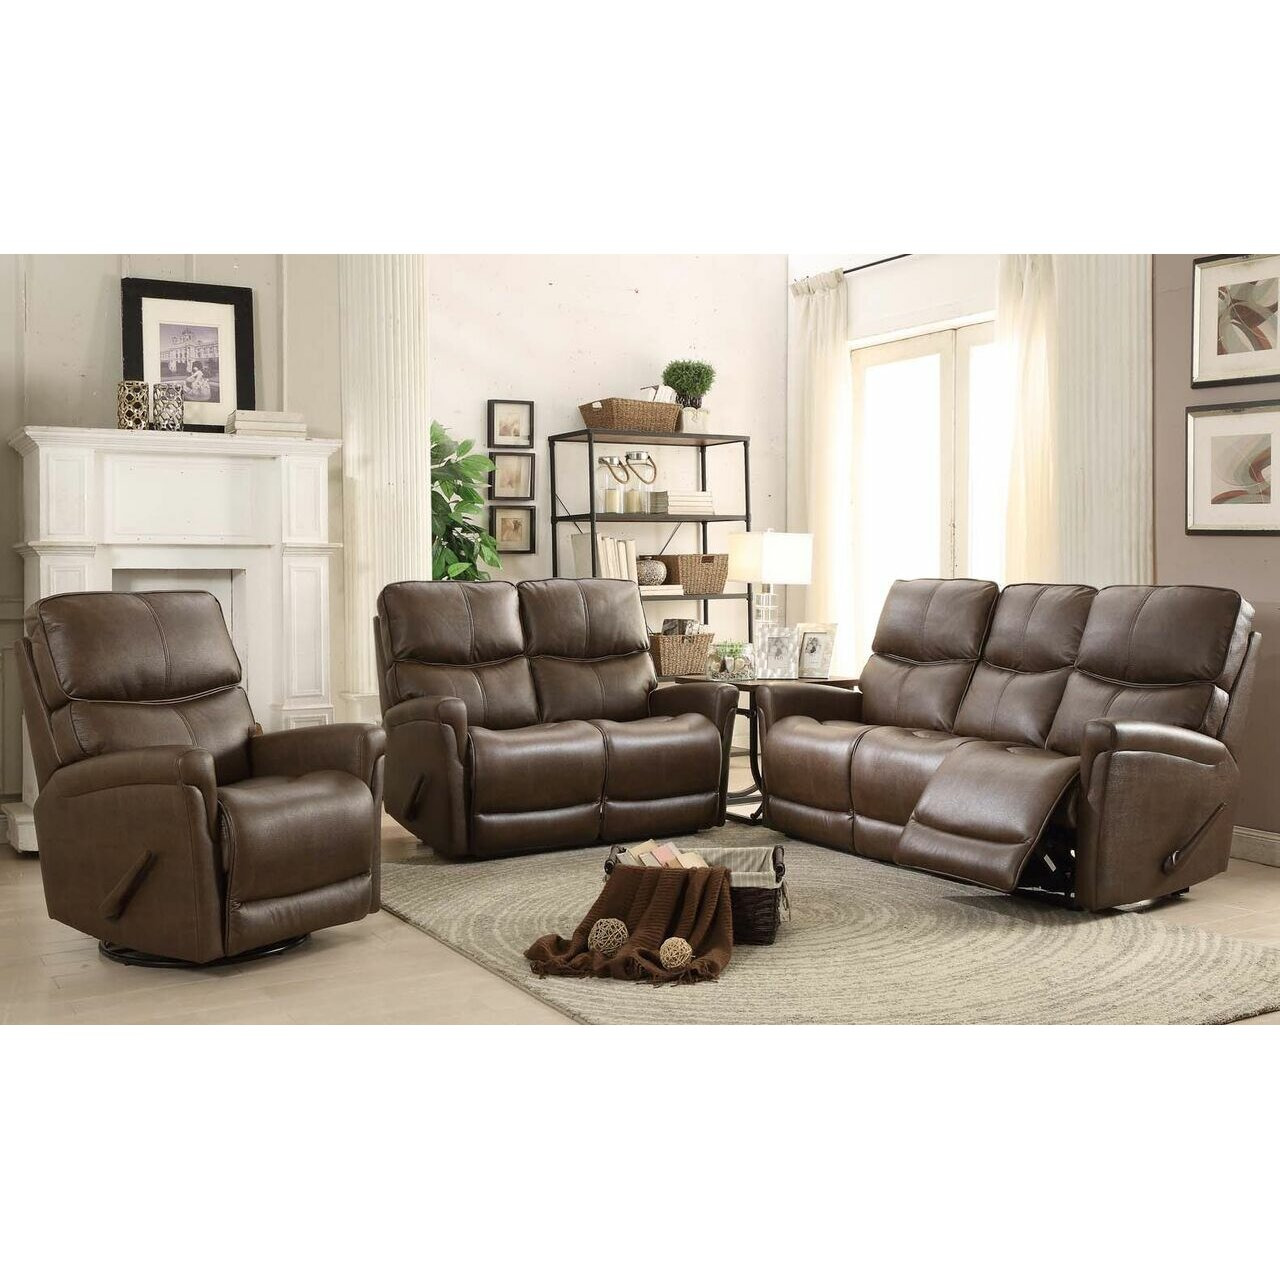 sunset trading easy living cologne 3 piece reclining living room set